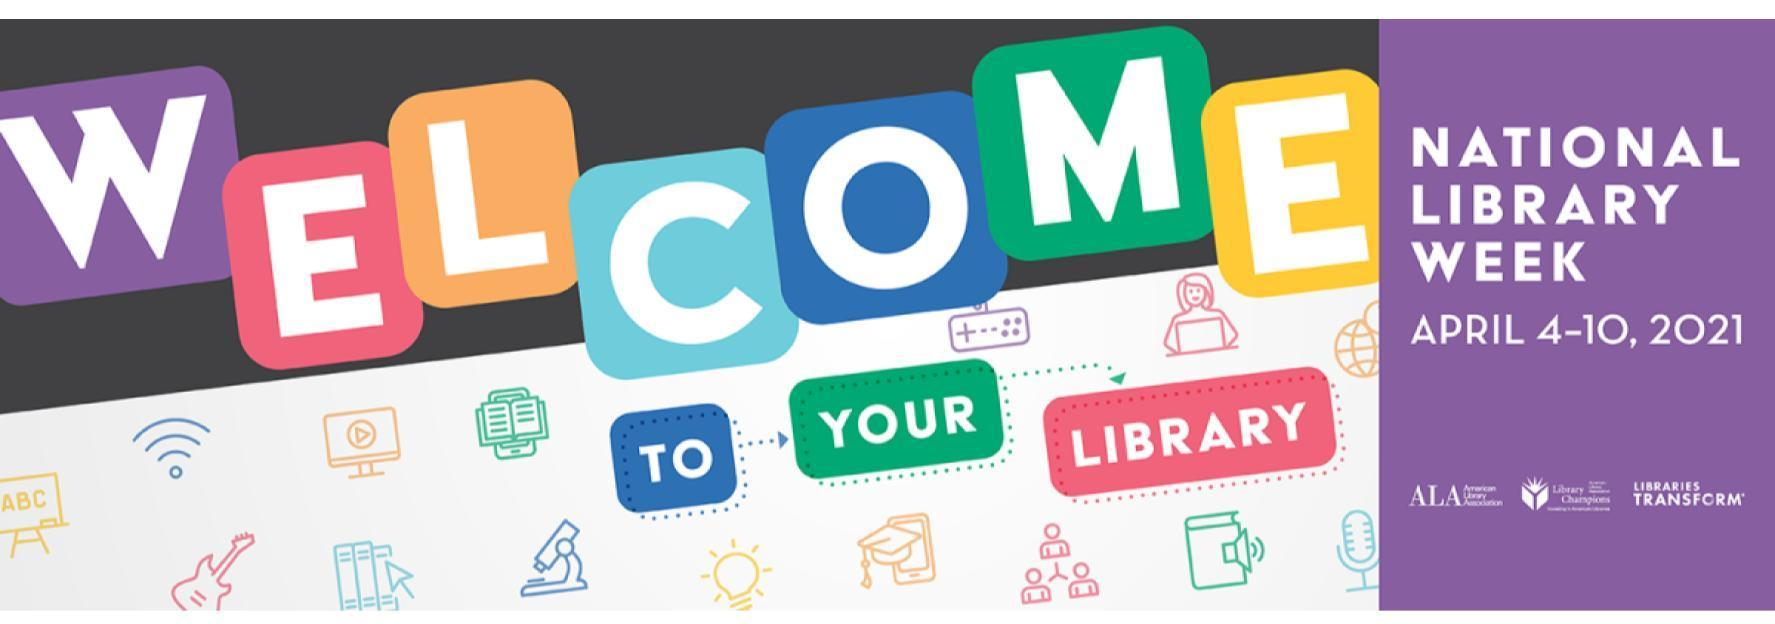 Welcome to Your Library with National Library Week on April 4-10th 2021